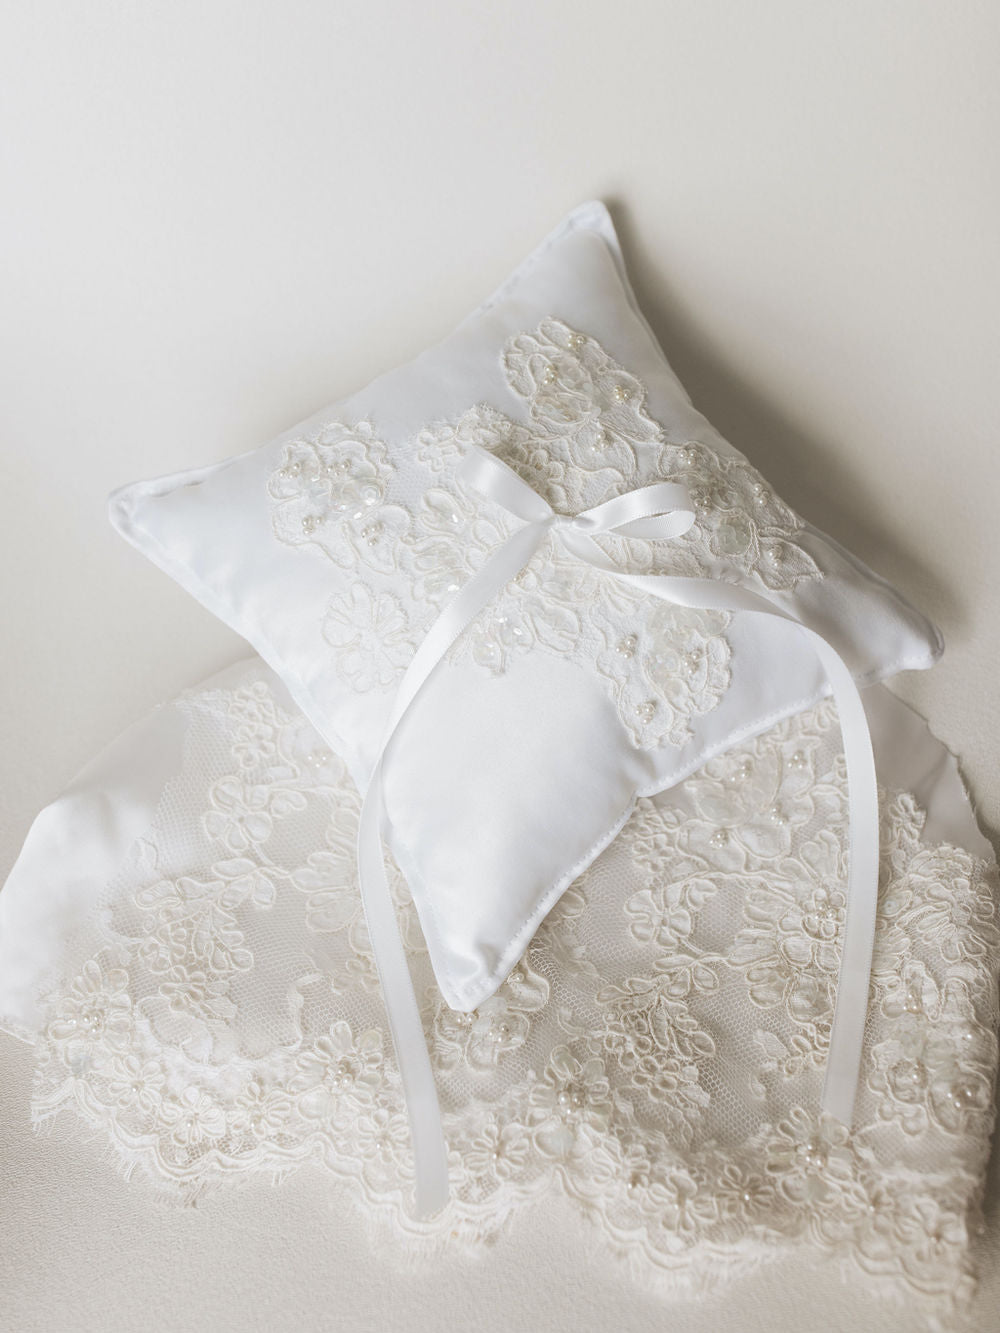 a wedding ring bearer pillow handmade with lace and pearls from the bride's mother's wedding dress by expert heirloom designer, The Garter Girl